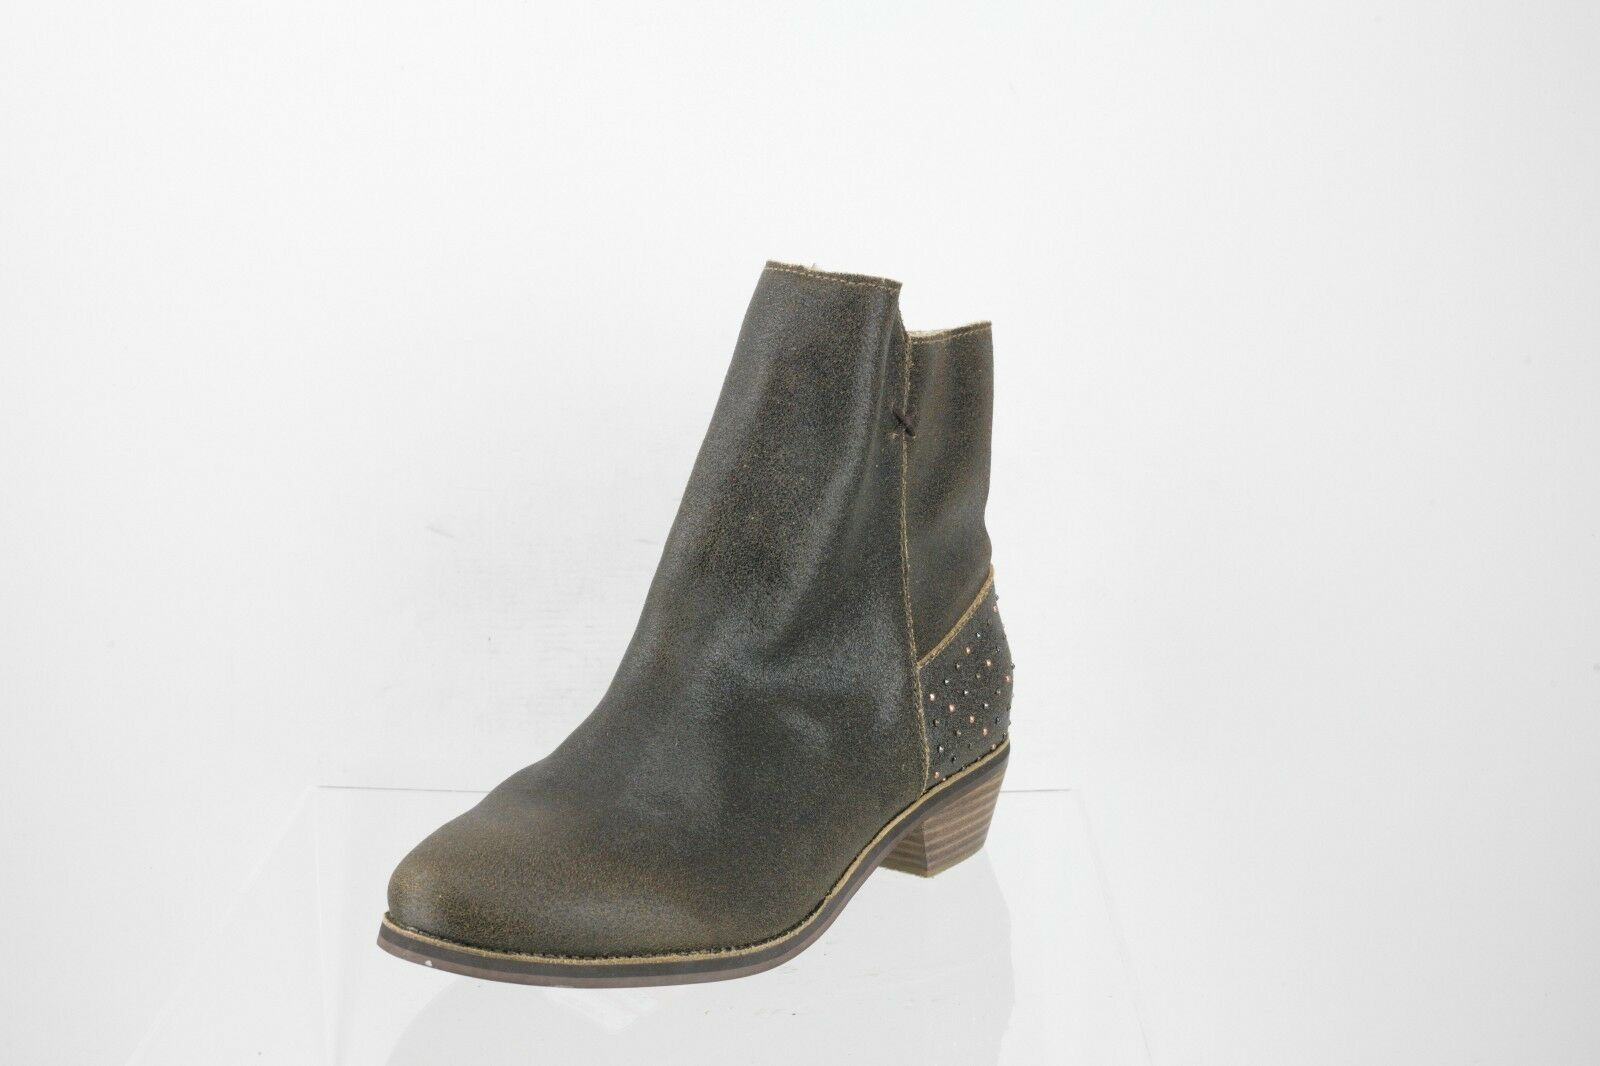 Reef Adora Western Dark Brown Leather Ankle Boots Women's shoes Size 9.5 M NEW